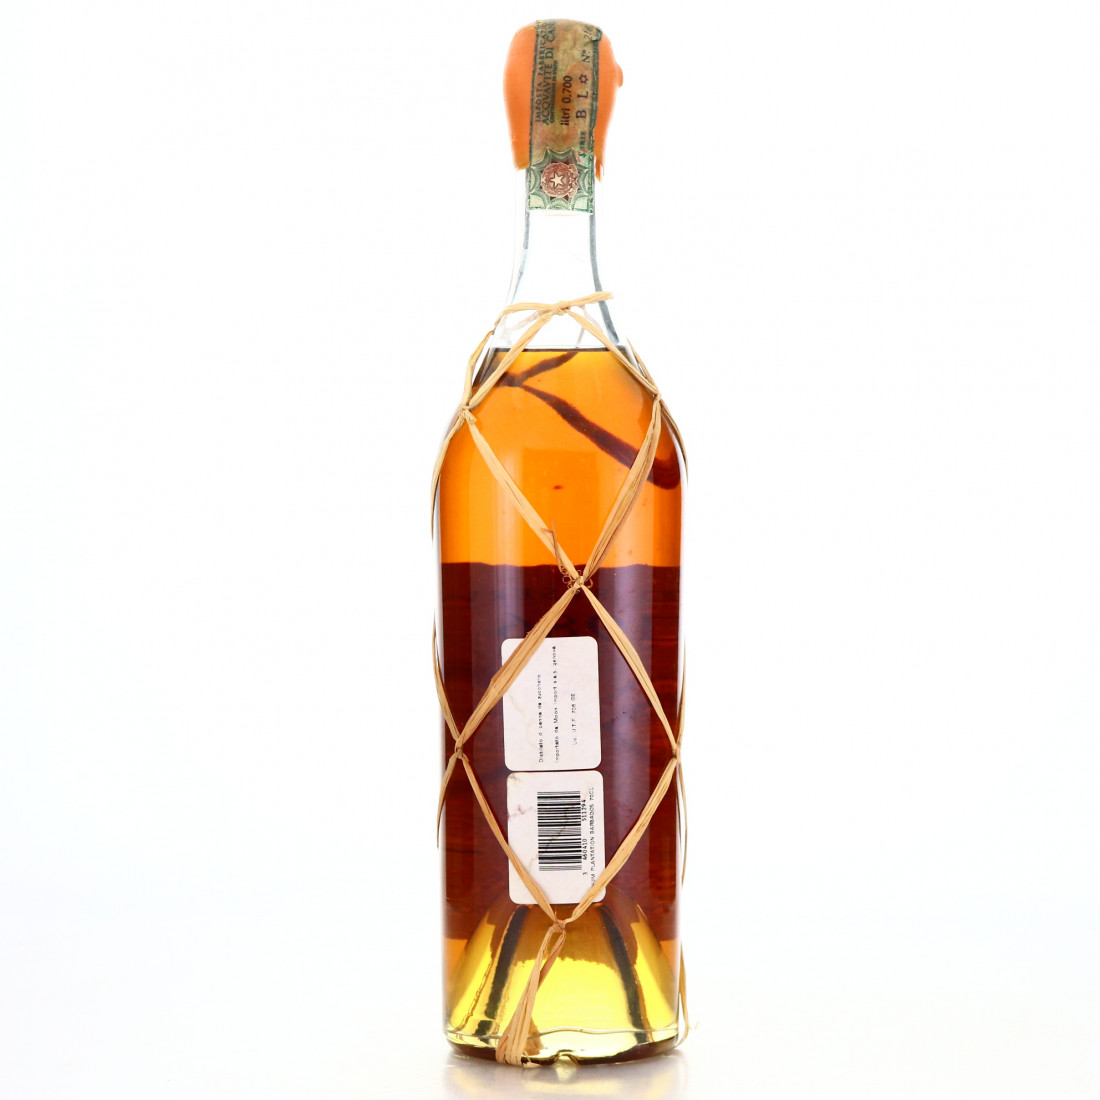 Barbados Rum 1986 Plantation Old Artisanal